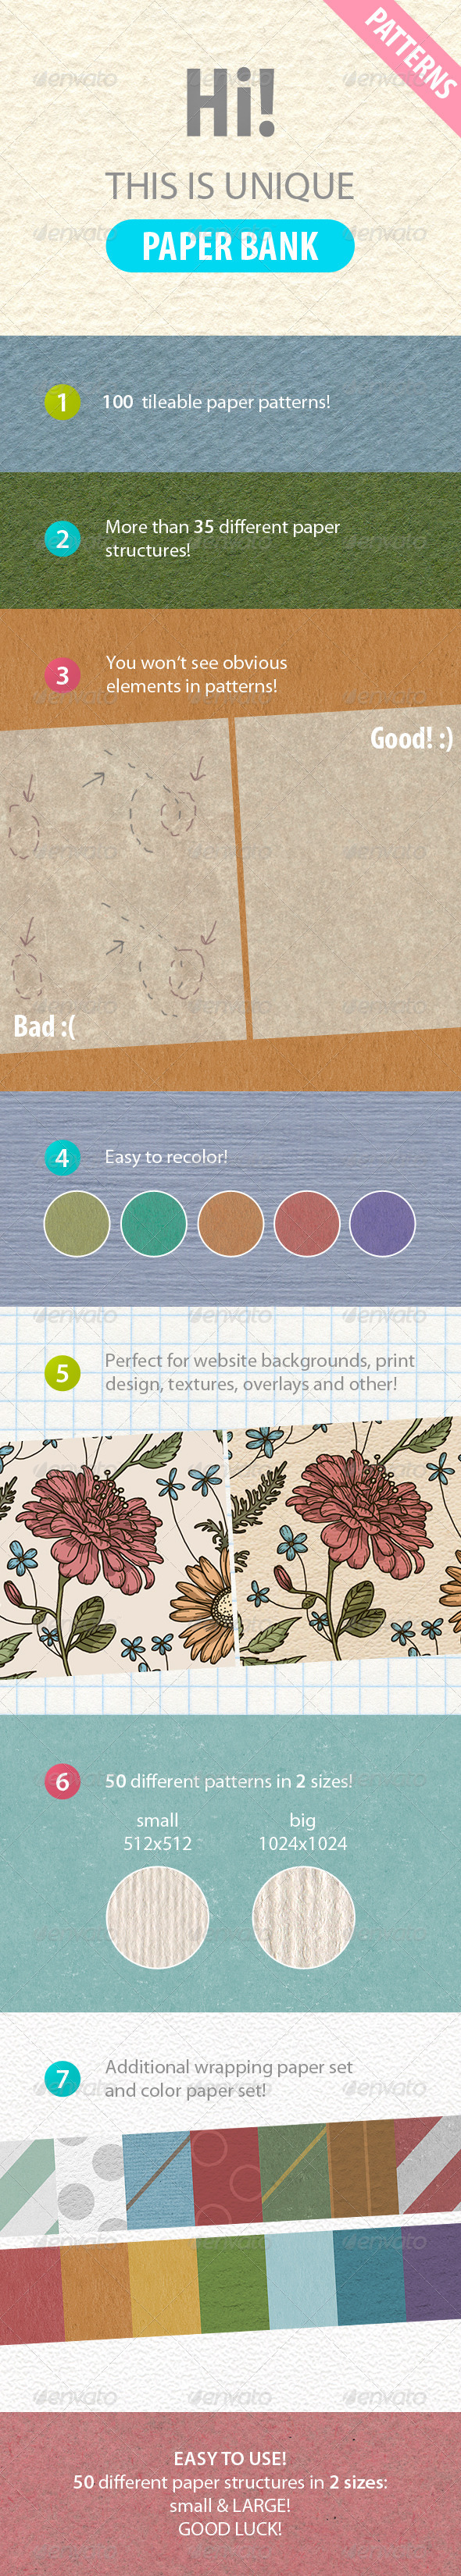 GraphicRiver 100 tileable paper patterns 7066935